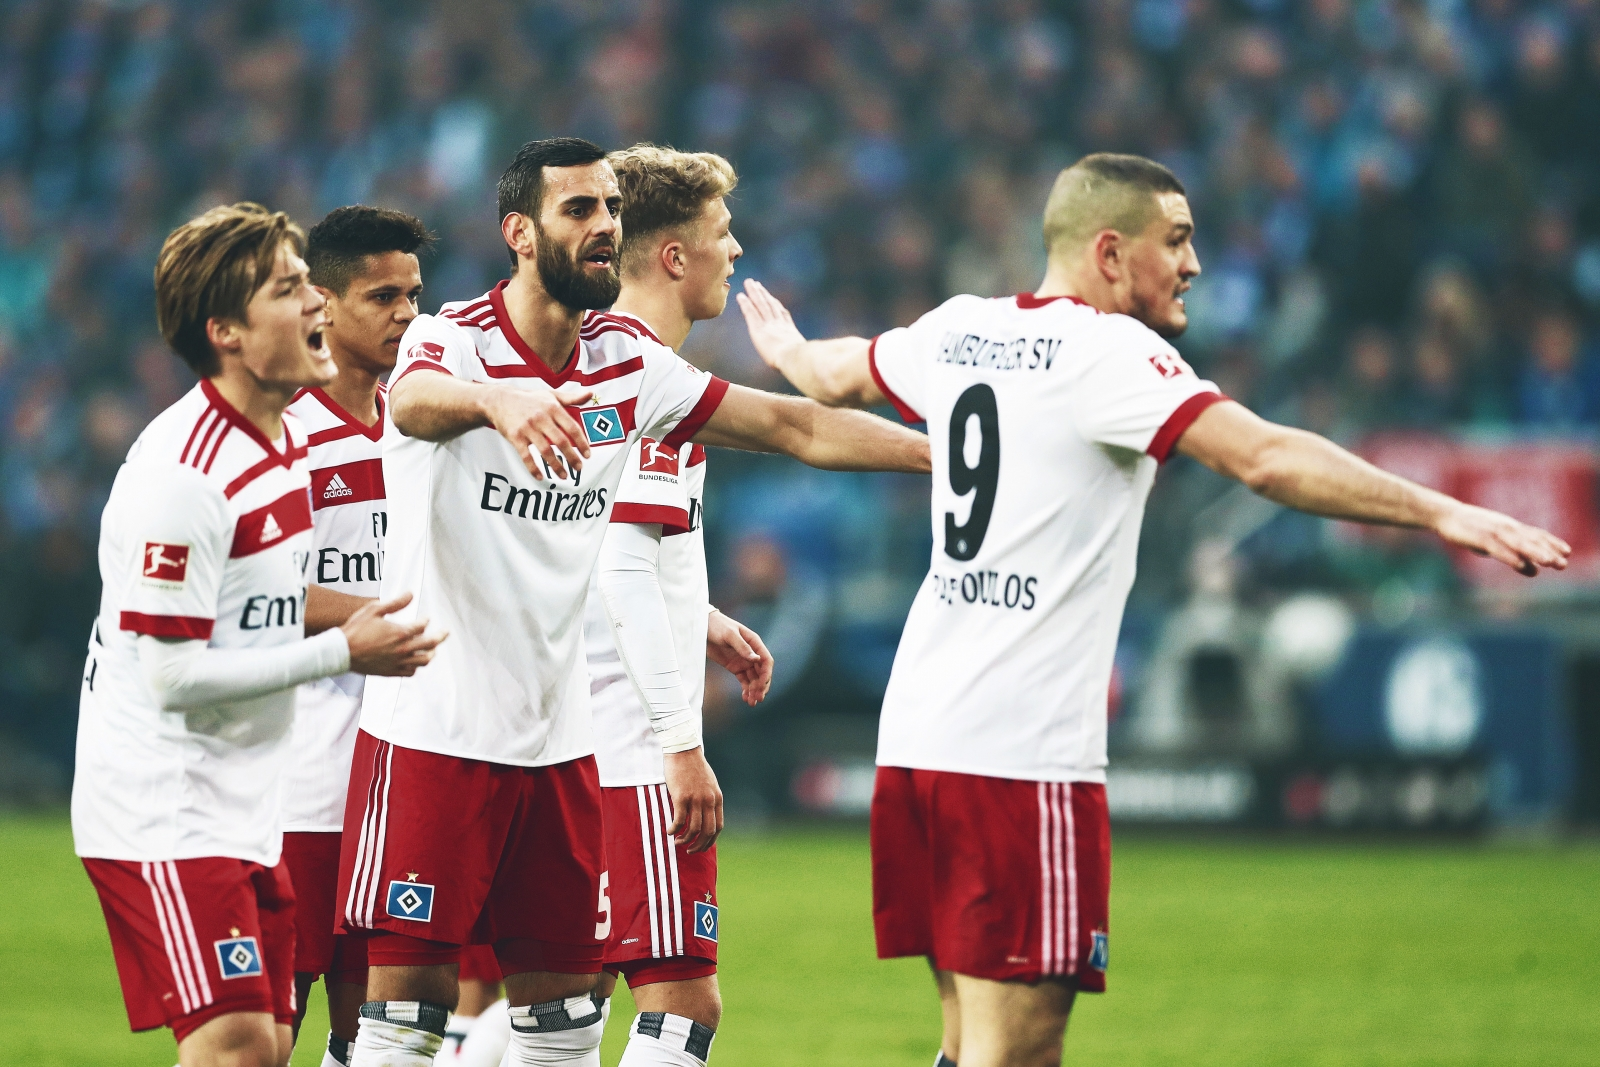 Why Don T Hamburger Sv Challenge The Bundesliga S Mightiest Clubs